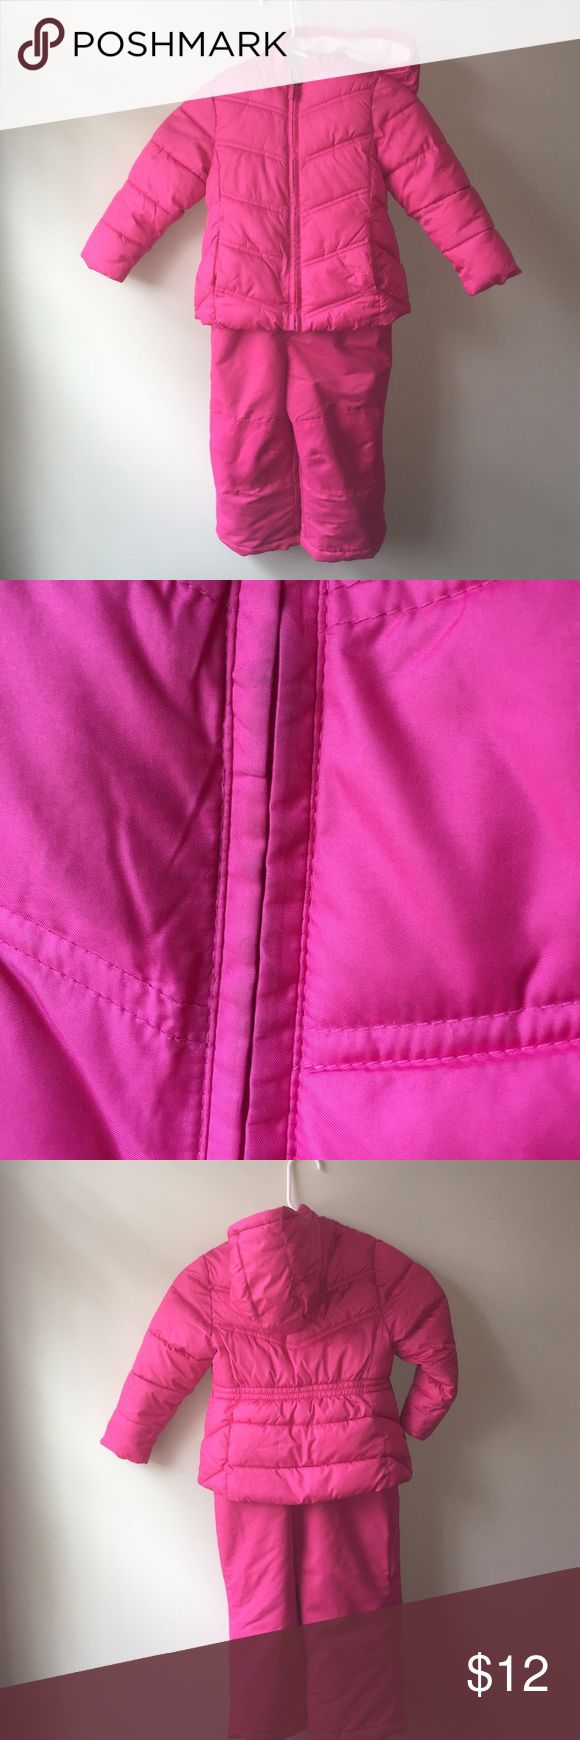 SNOW SUIT Size 3t. Has a couple dirt stains as pictured. Other than that good condition. healthtex Jackets & Coats